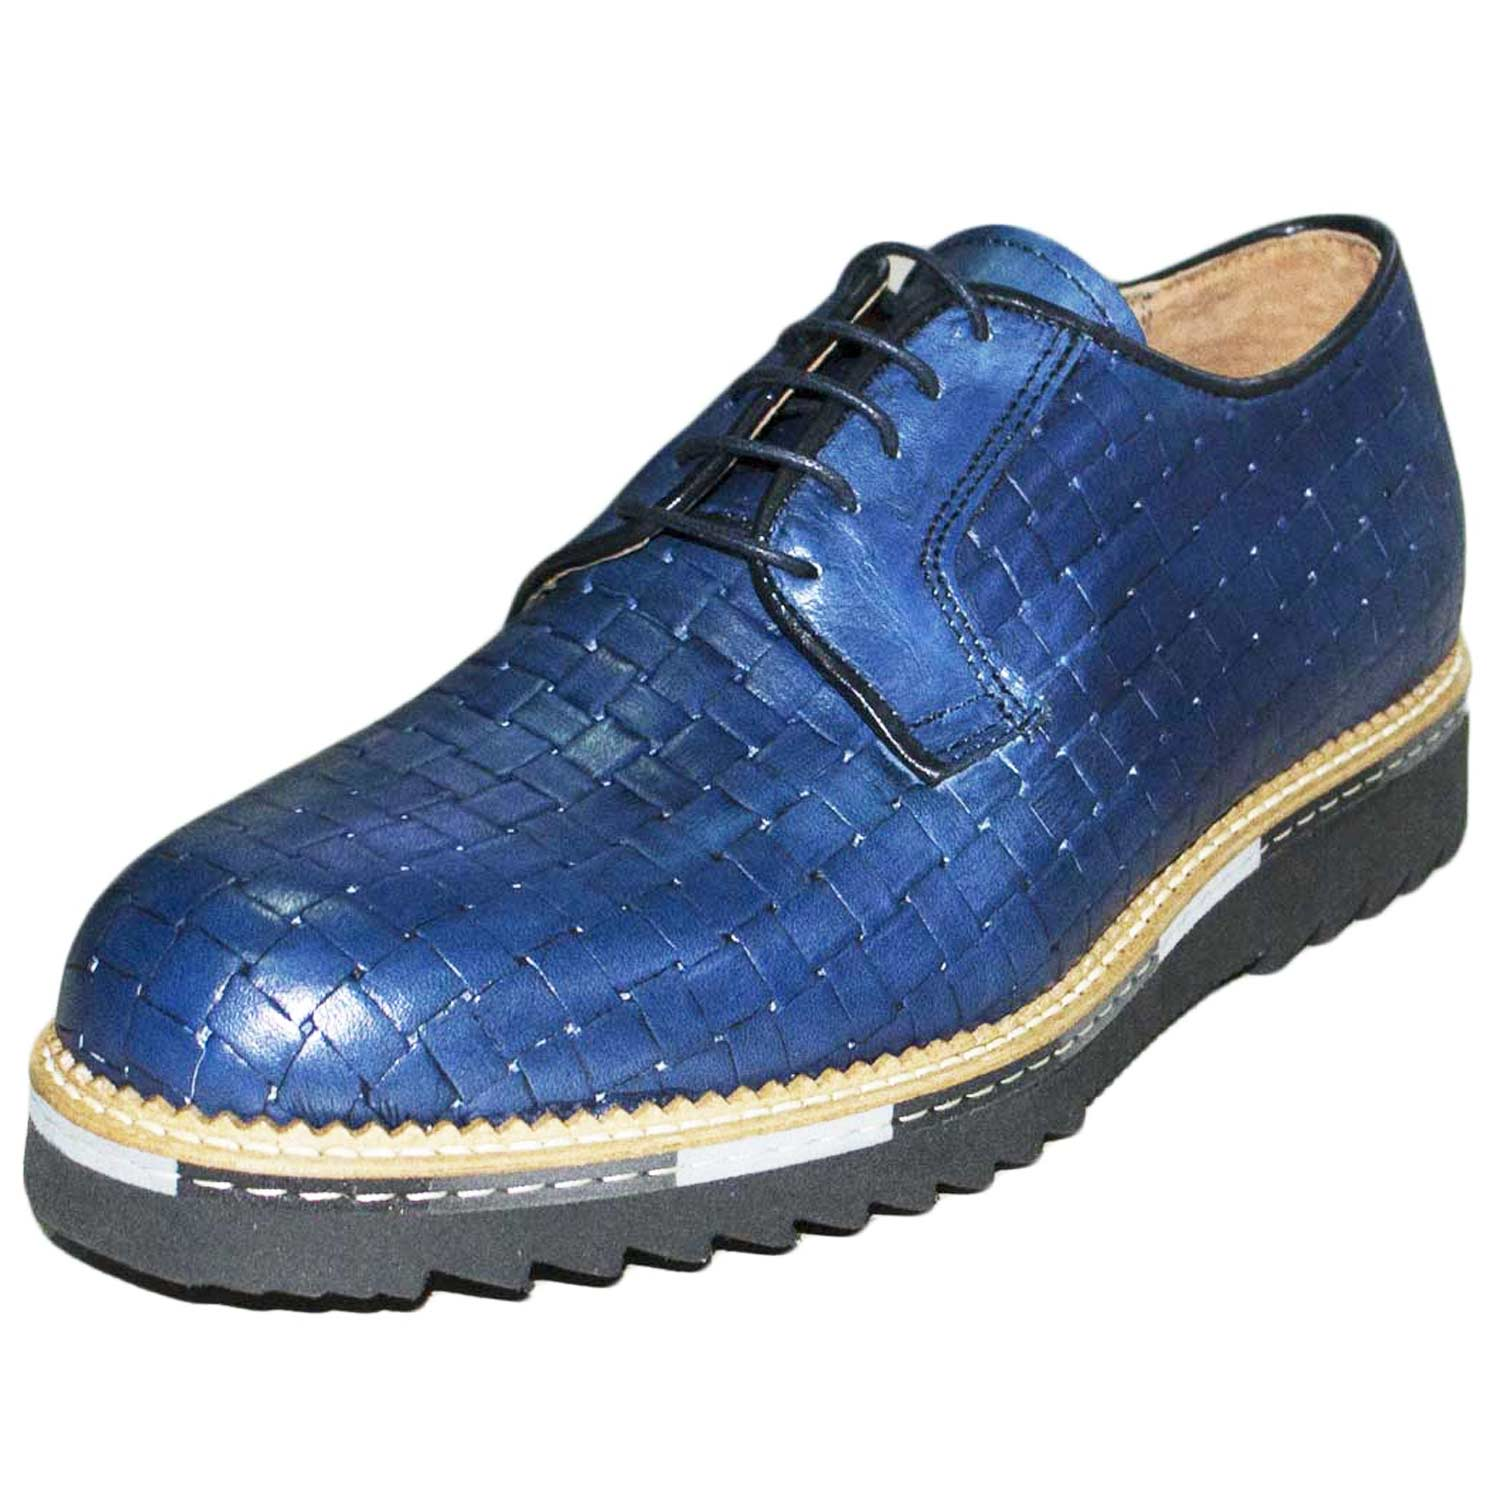 Scarpe uomo stringate intreccio blu vera pelle fondo con intersuola colorata ultraleggero made in italy comfort